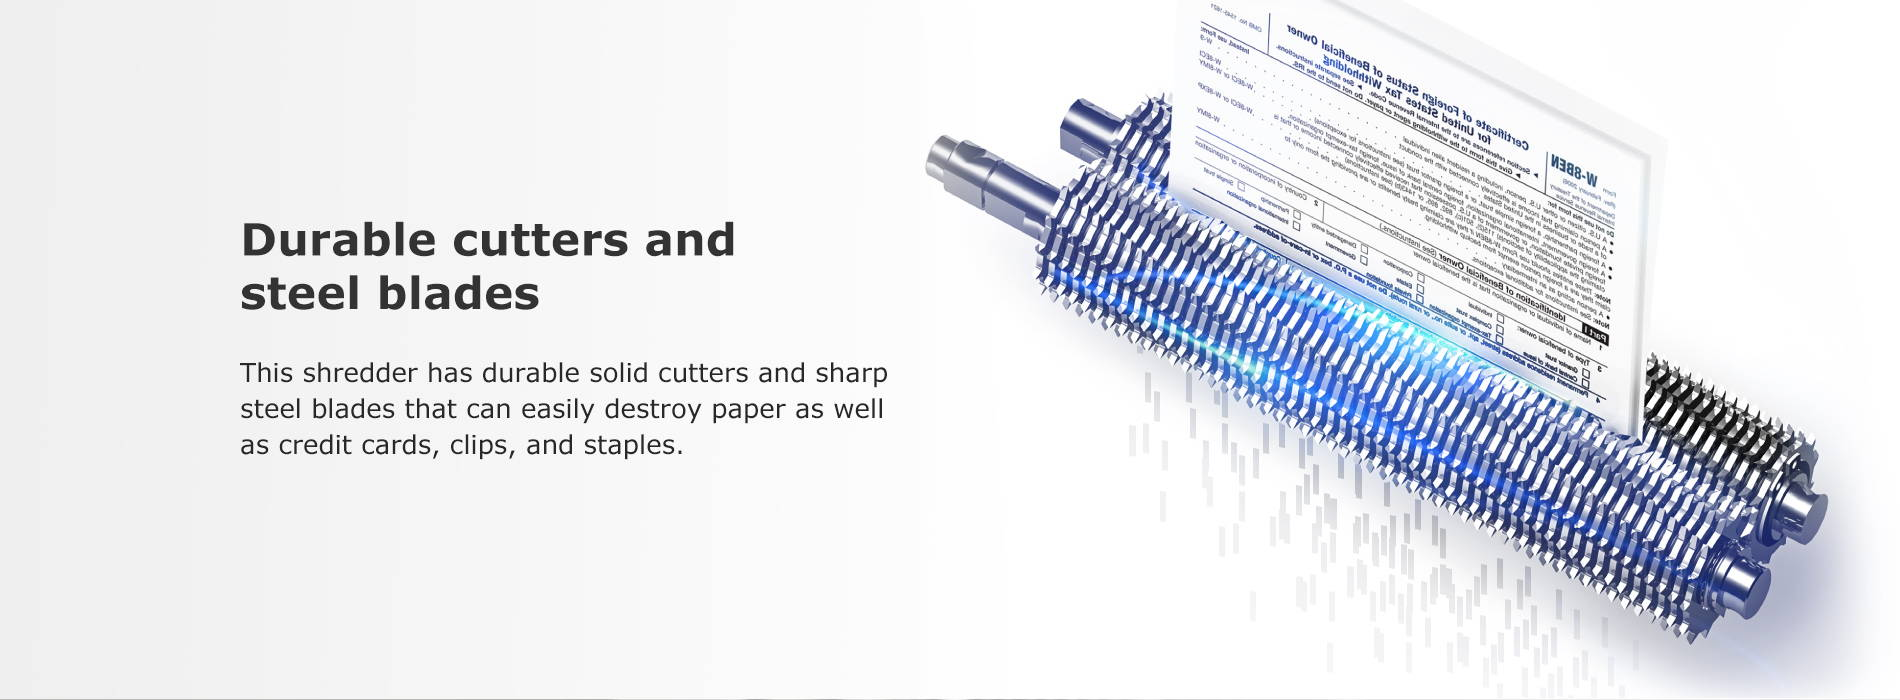 Durable cutters and steel blades This shredder has durable solid cutters and sharp steel blades that can easily destroy paper as well as credit cards, clips, and staples.